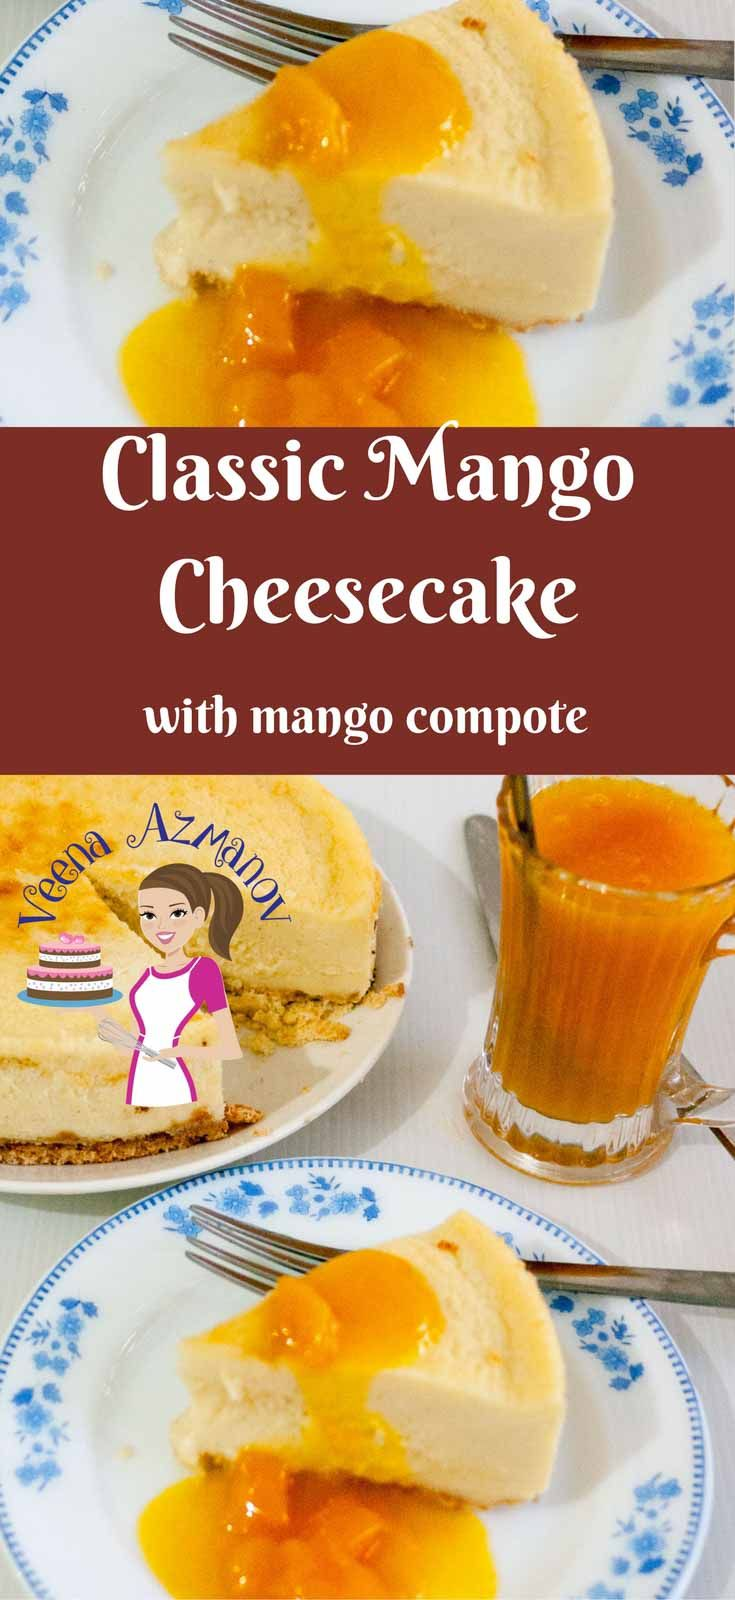 This classic mango cheesecake with mango compote makes an exotic tropical dessert in summer with fresh mango or anytime of the year with frozen mangoes. The natural sweetness and flavor of mangoes makes this a real treat while the recipe itself is simple, easy and classic. via @Veenaazmanov